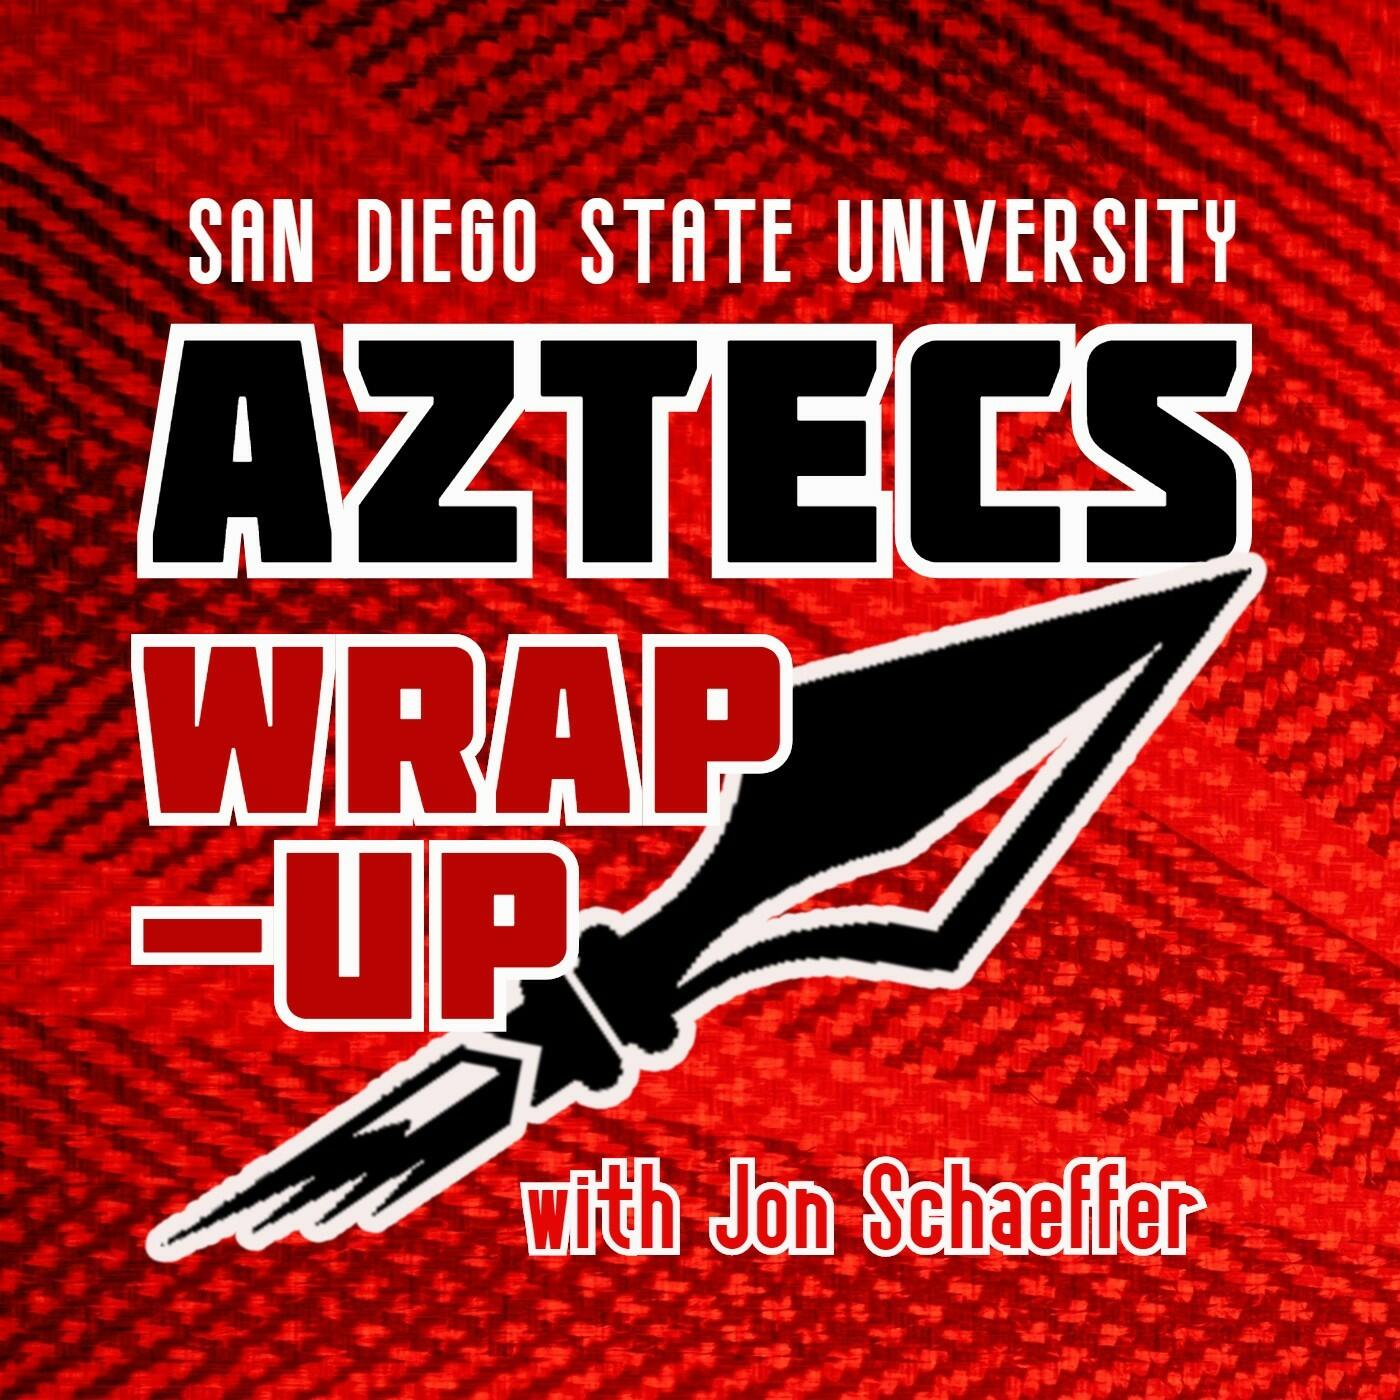 Listen to the The Aztecs Wrap Up Show with Jon Schaeffer Episode - San Diego State 34 UNLV 6 on iHeartRadio | iHeartRadio